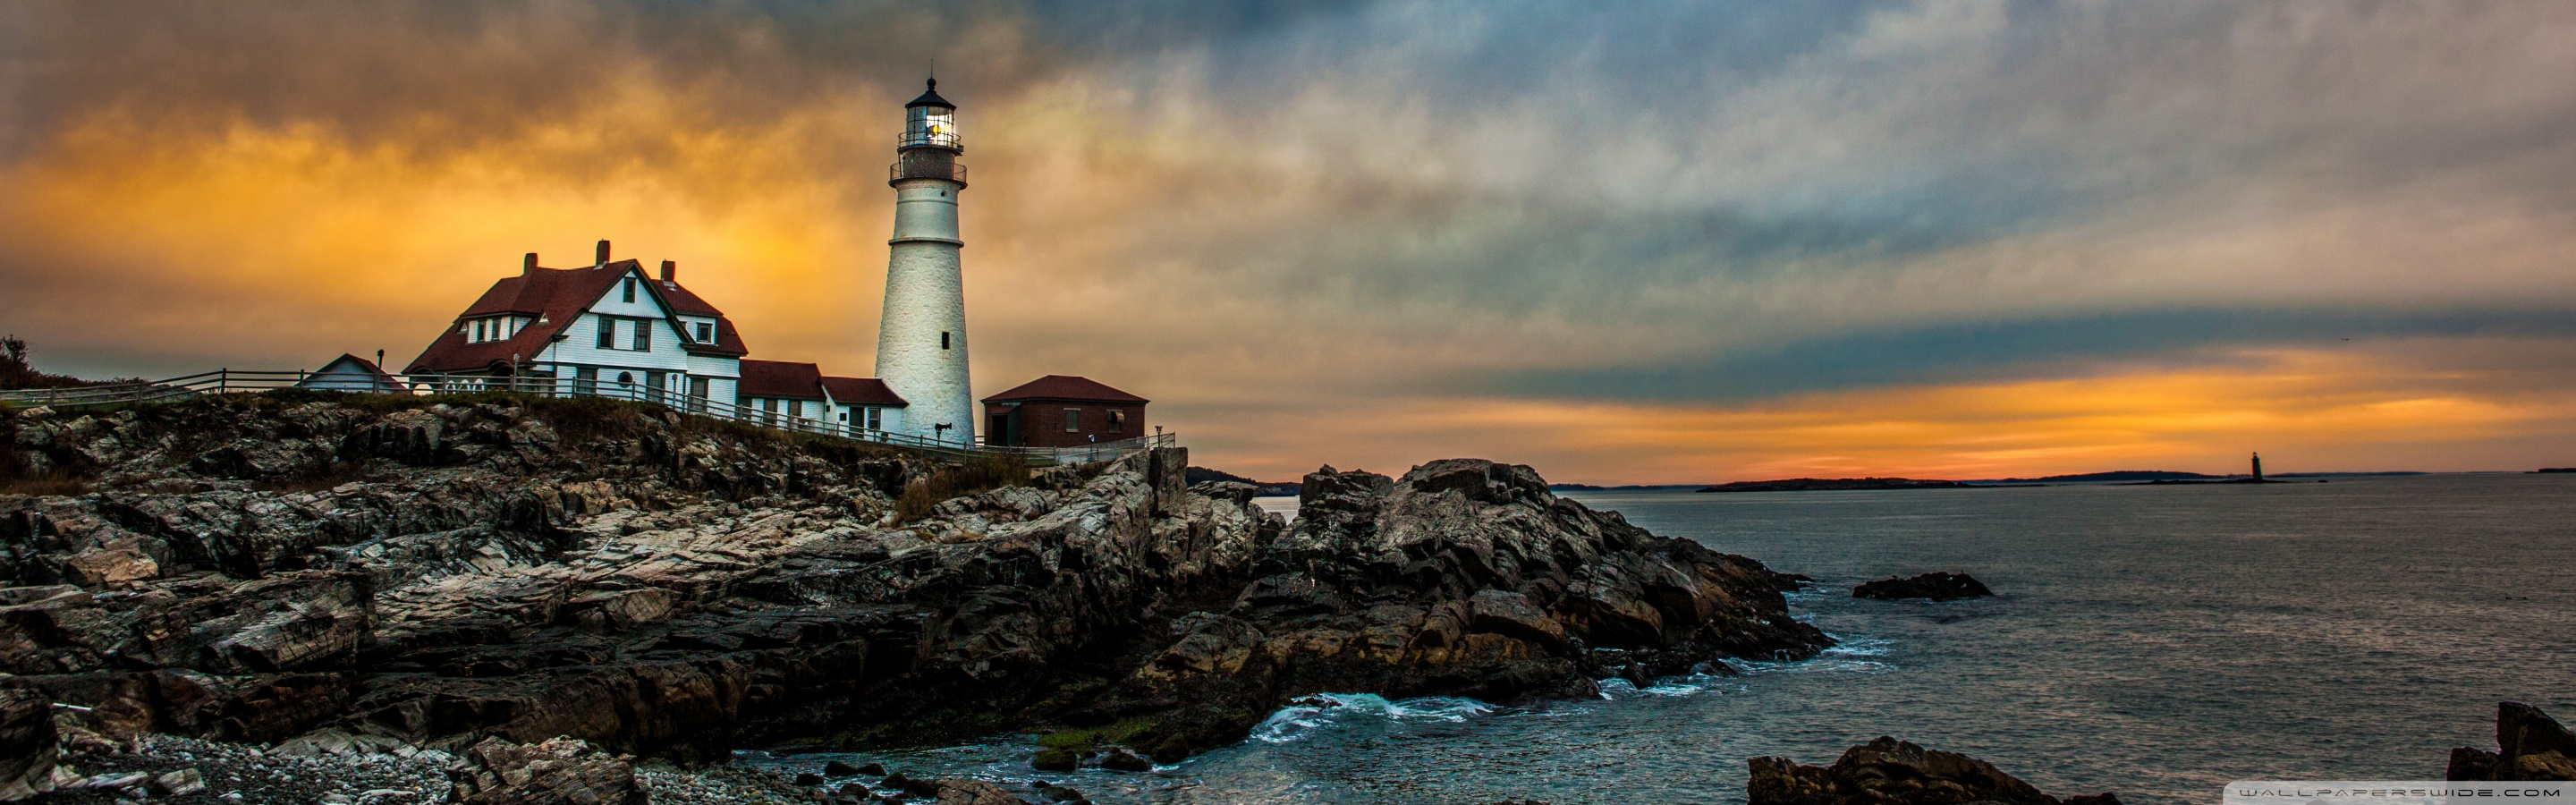 3840x1080 Pubg Wallpaper Portland Head Light Lighthouse 4k Hd Desktop Wallpaper For